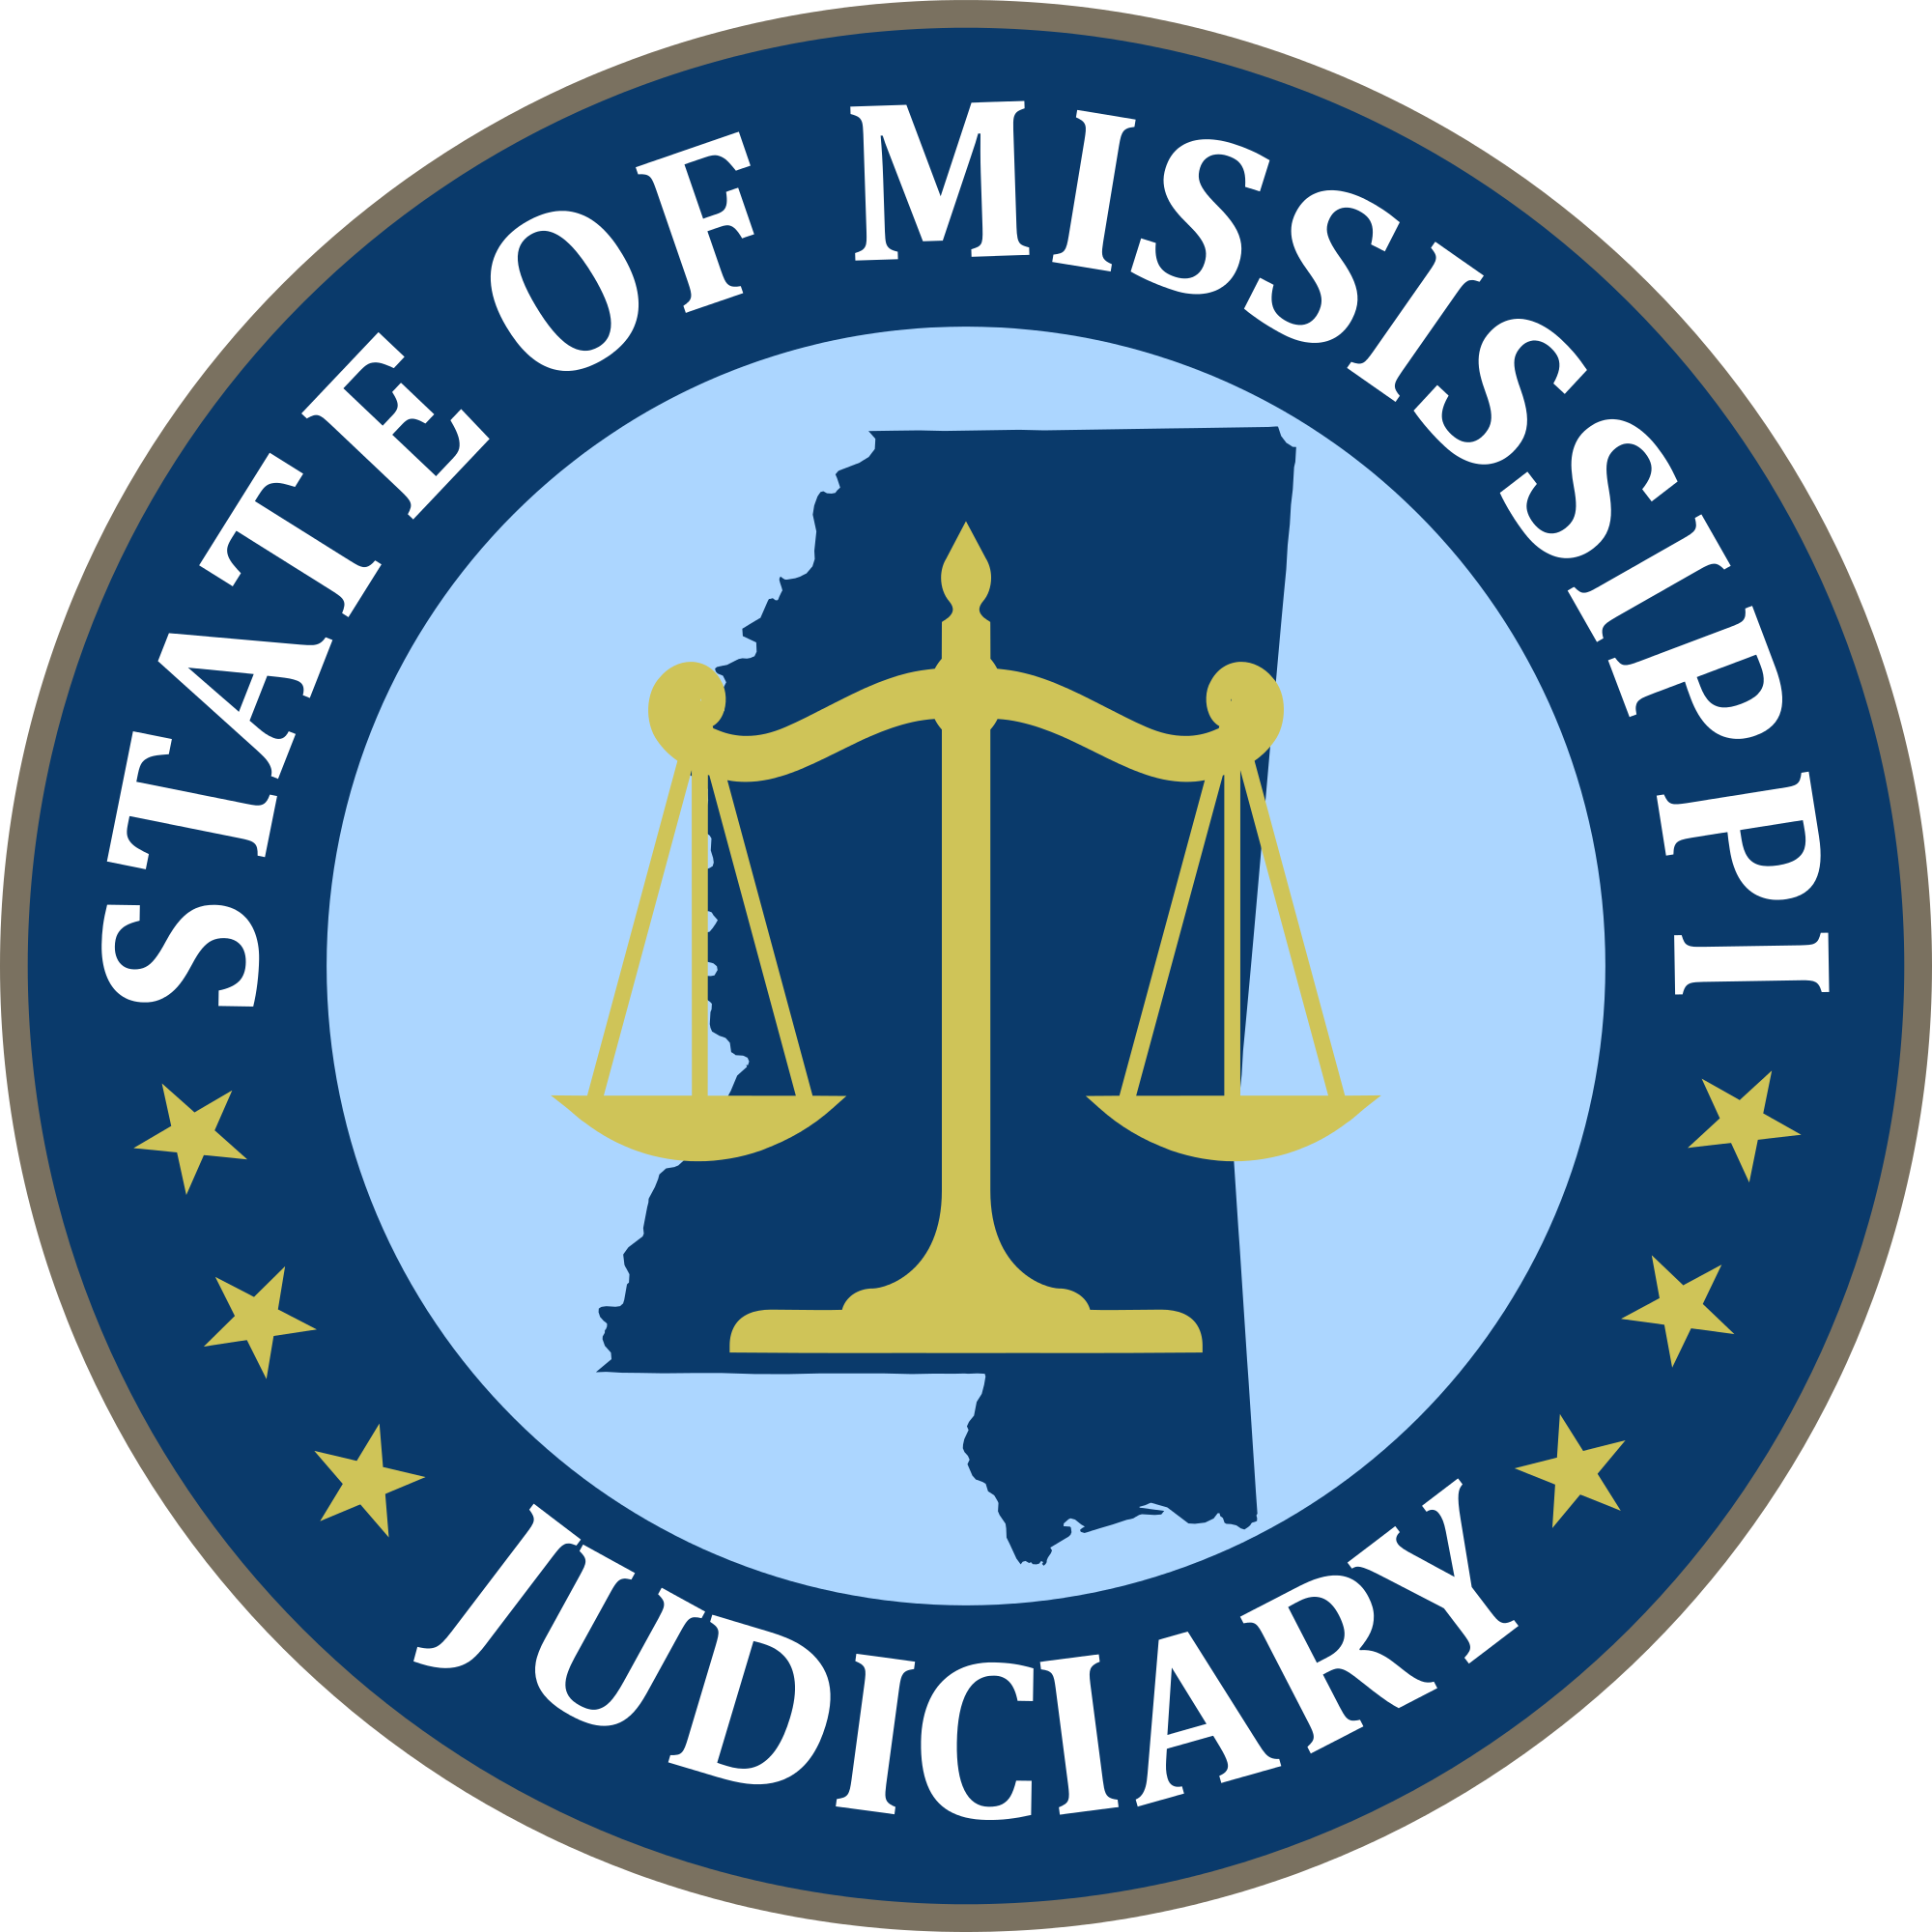 News 11 9 the mississippi supreme court has granted a new trial to death row prisoner justin blakeney the court ruled that blakeney s right to present a